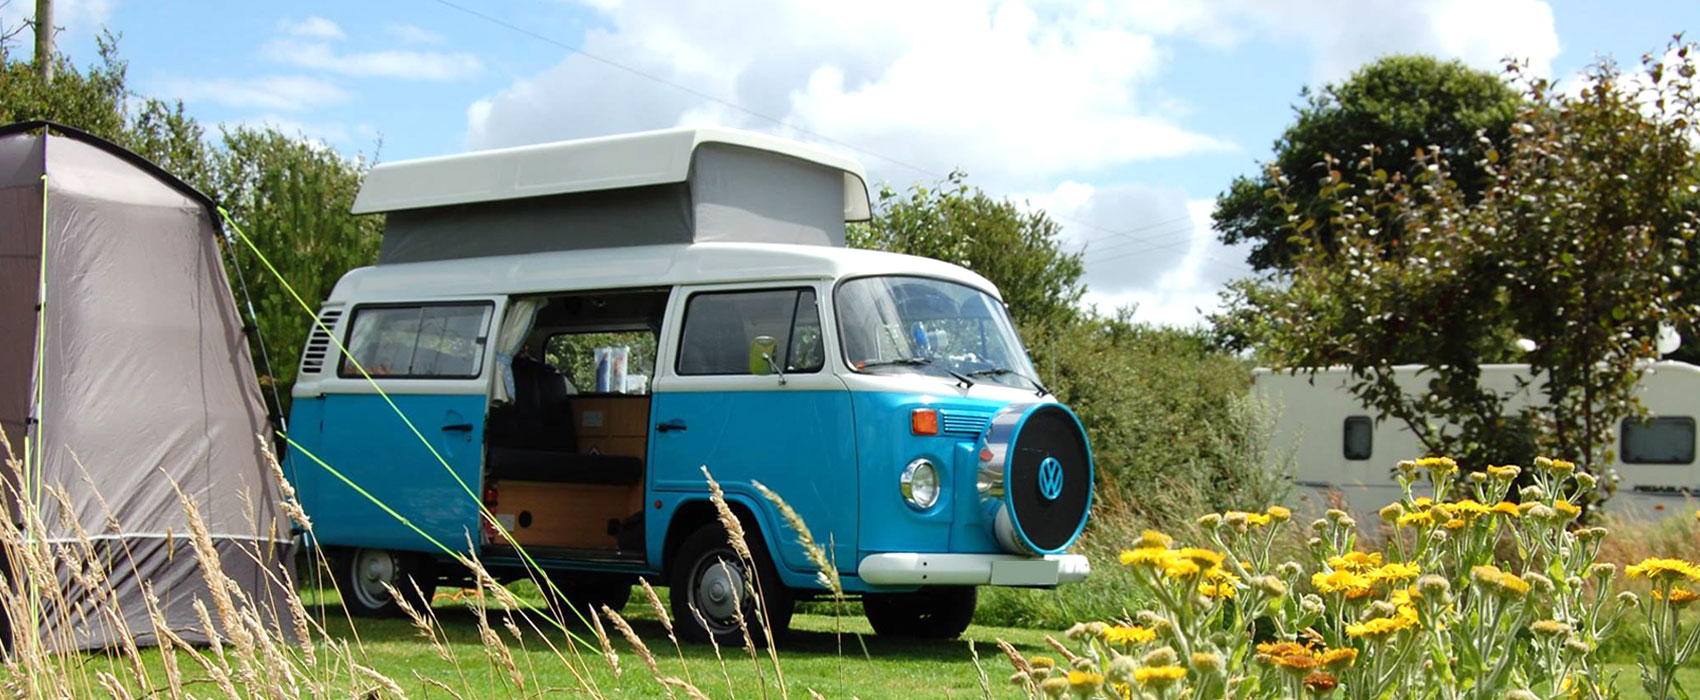 Book Your VW Campervan Dorset Experience